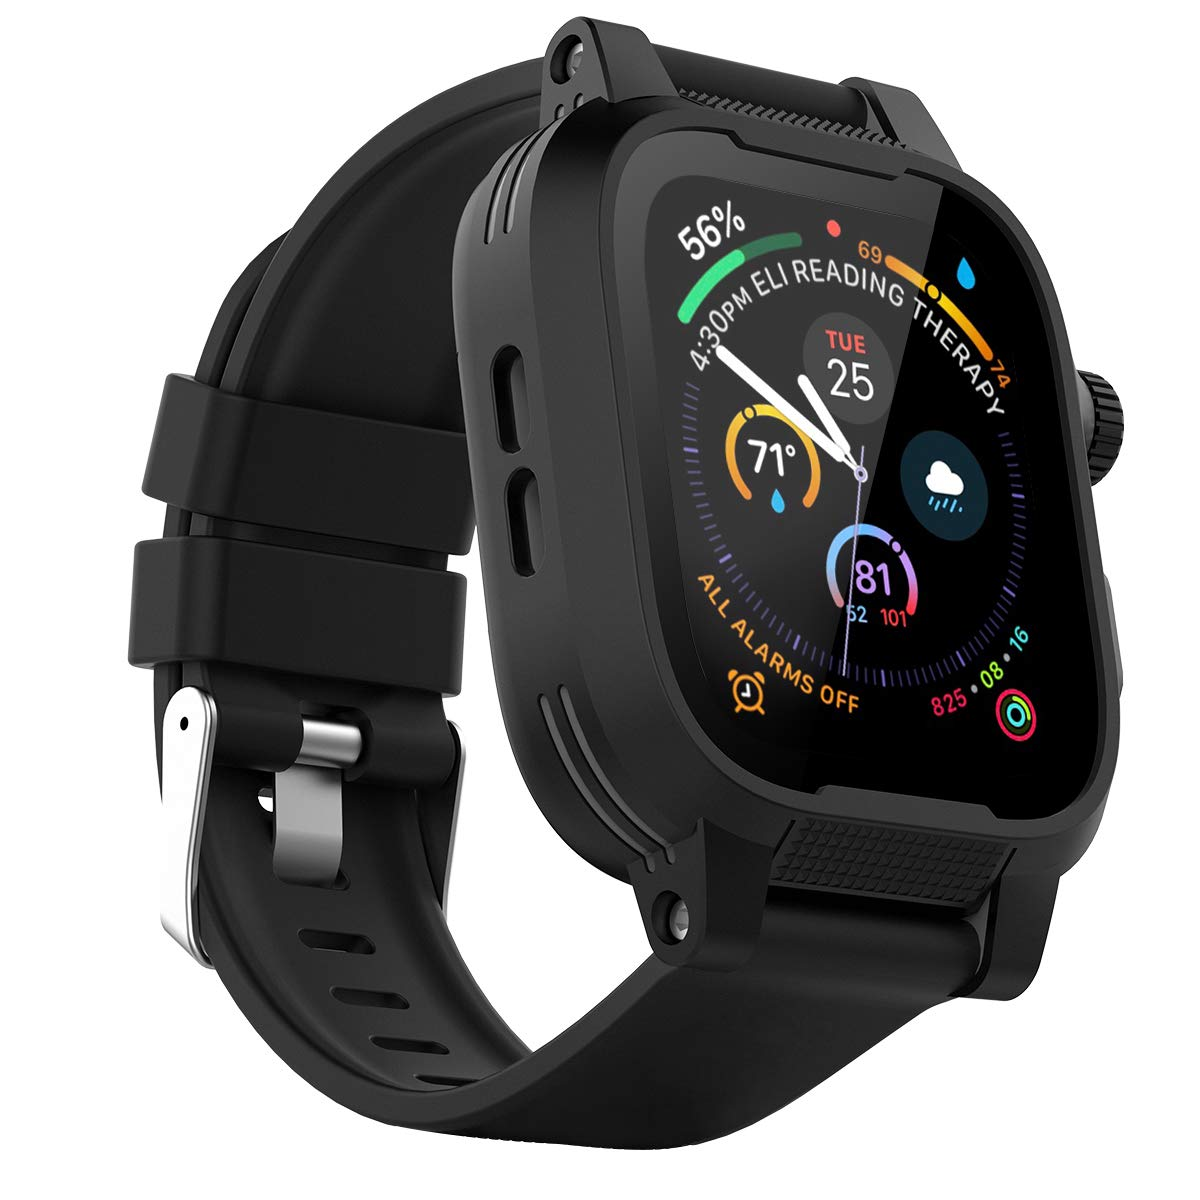 IP68 Waterproof Watch Case for 42mm Apple Watch Series 3 & 2 Heavy Duty Shockproof Impact Resistant iWatch Full Sealed Case with Premium Soft Silicone Replaceable Watch Band